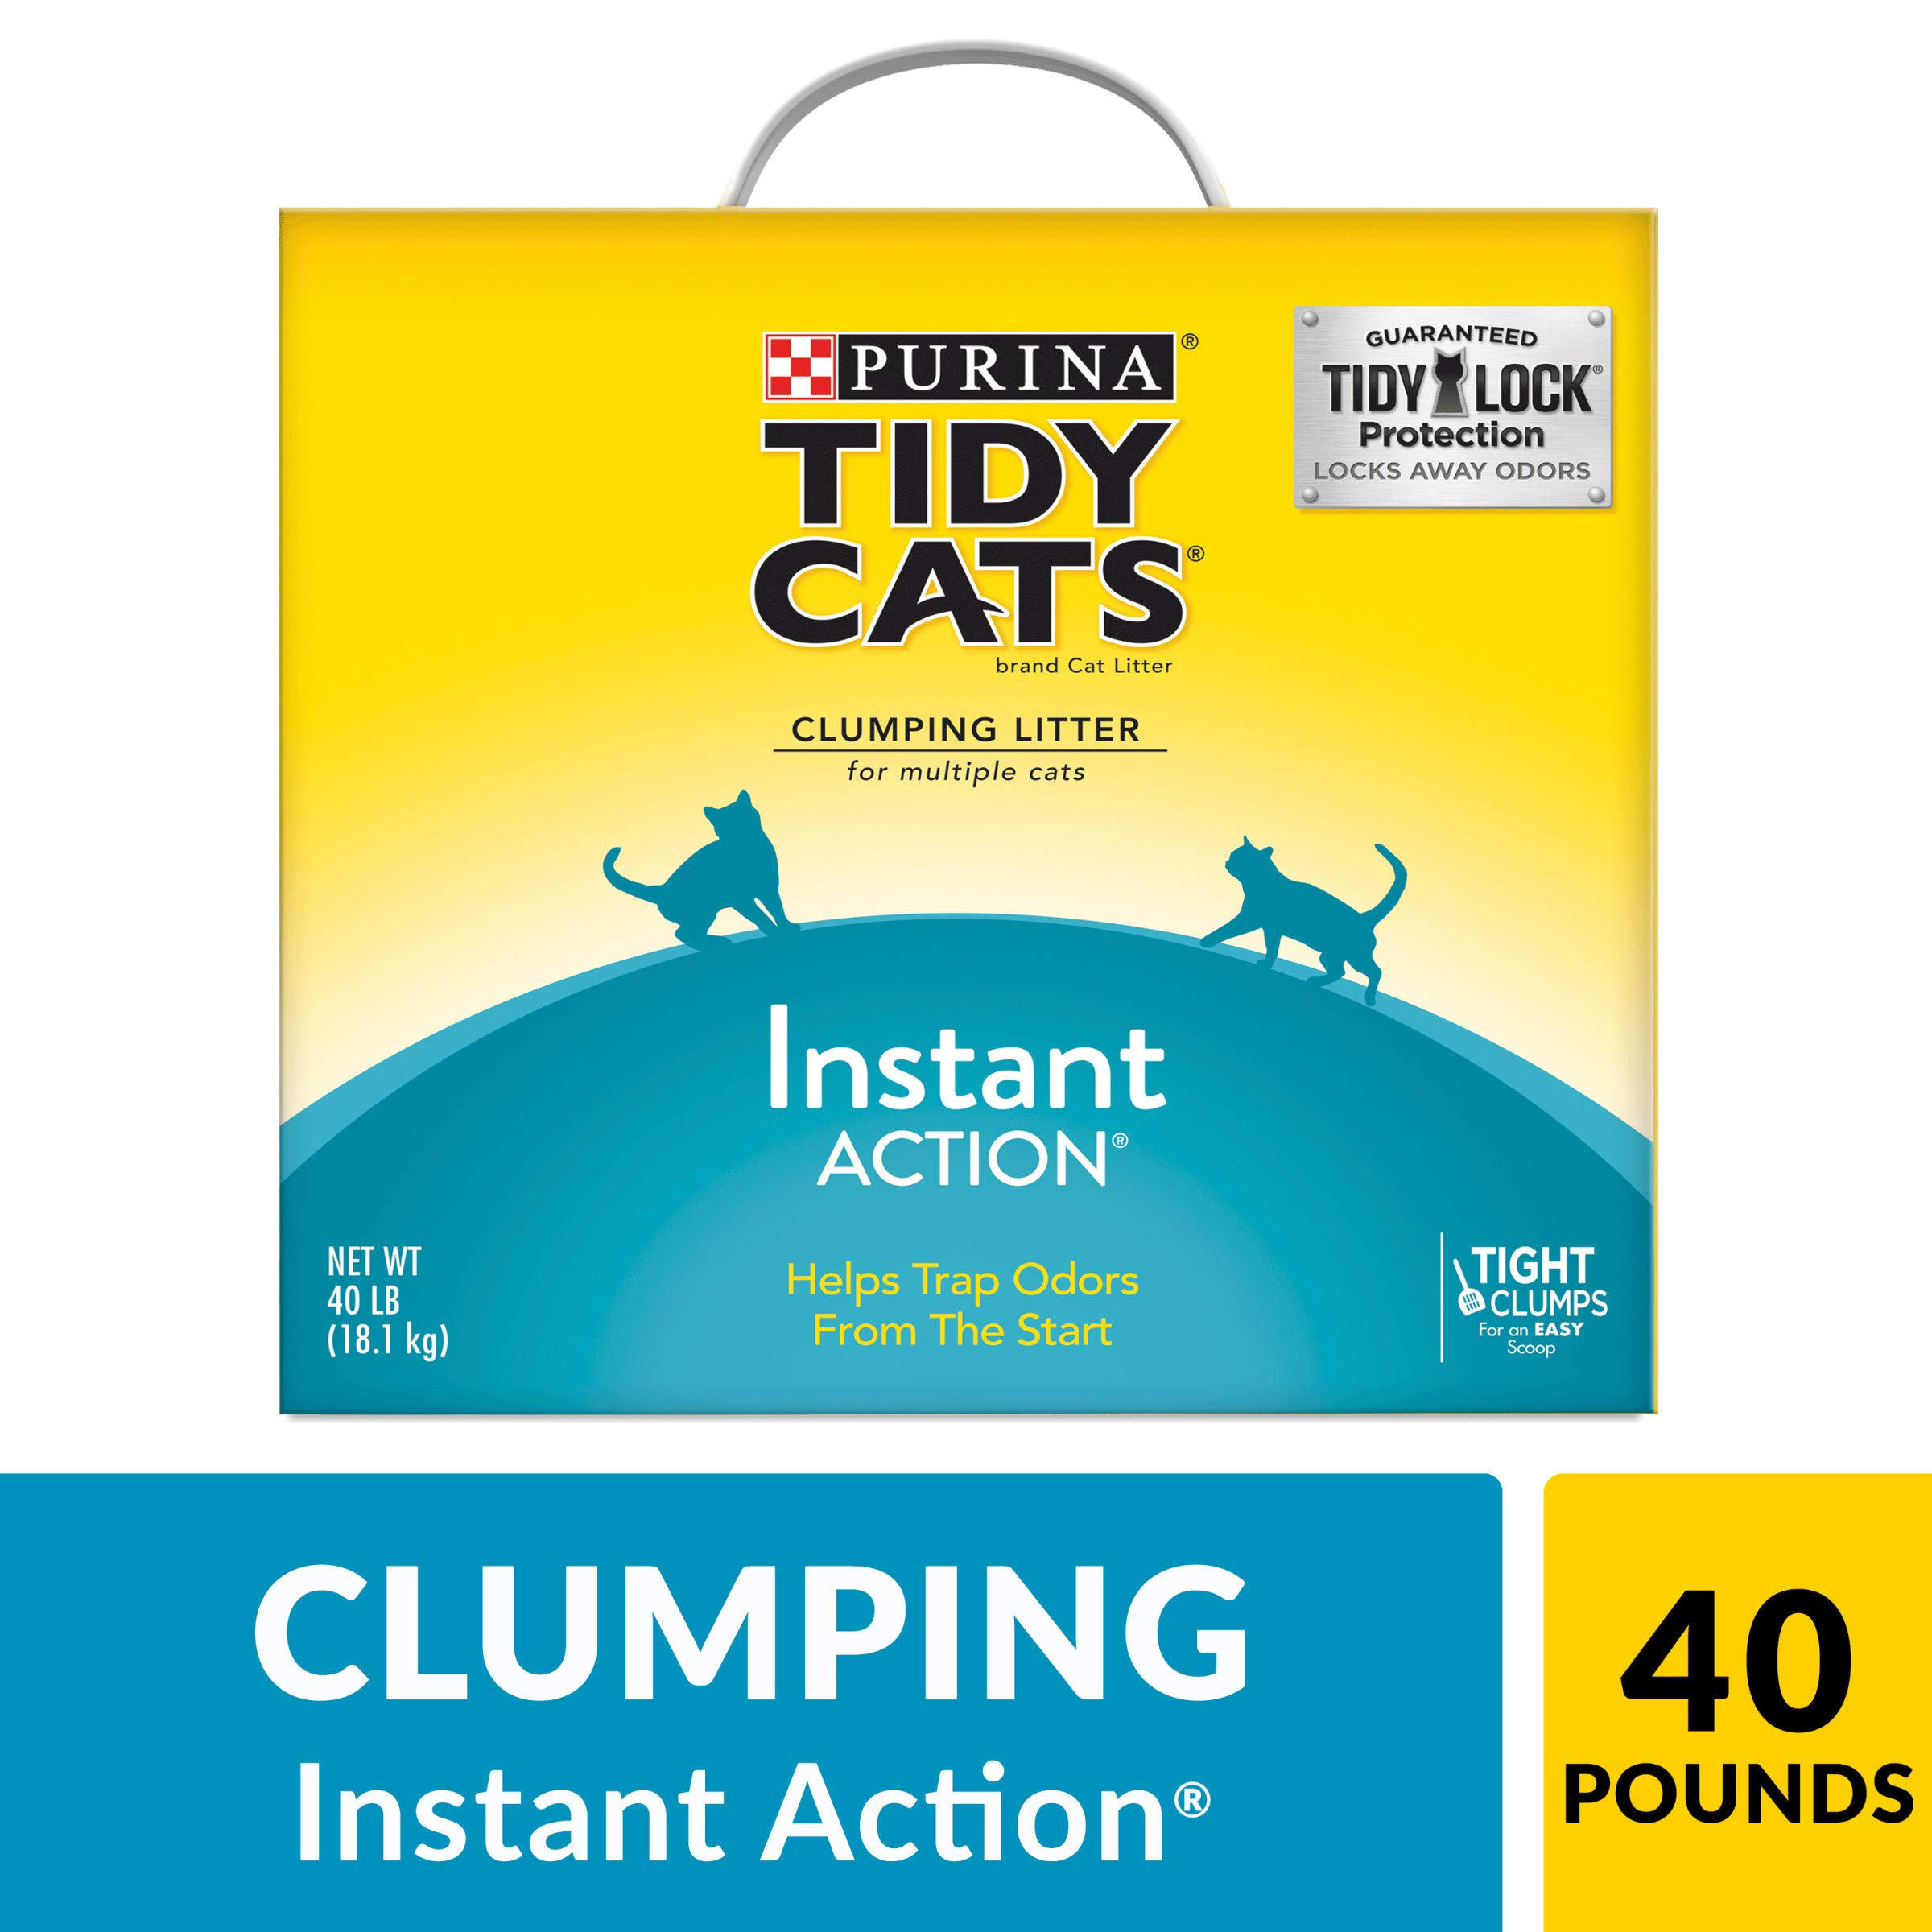 Purina Tidy Cats Clumping Cat Litter, Instant Action Multi Cat Litter - 40 lb. Box by Purina Tidy Cats